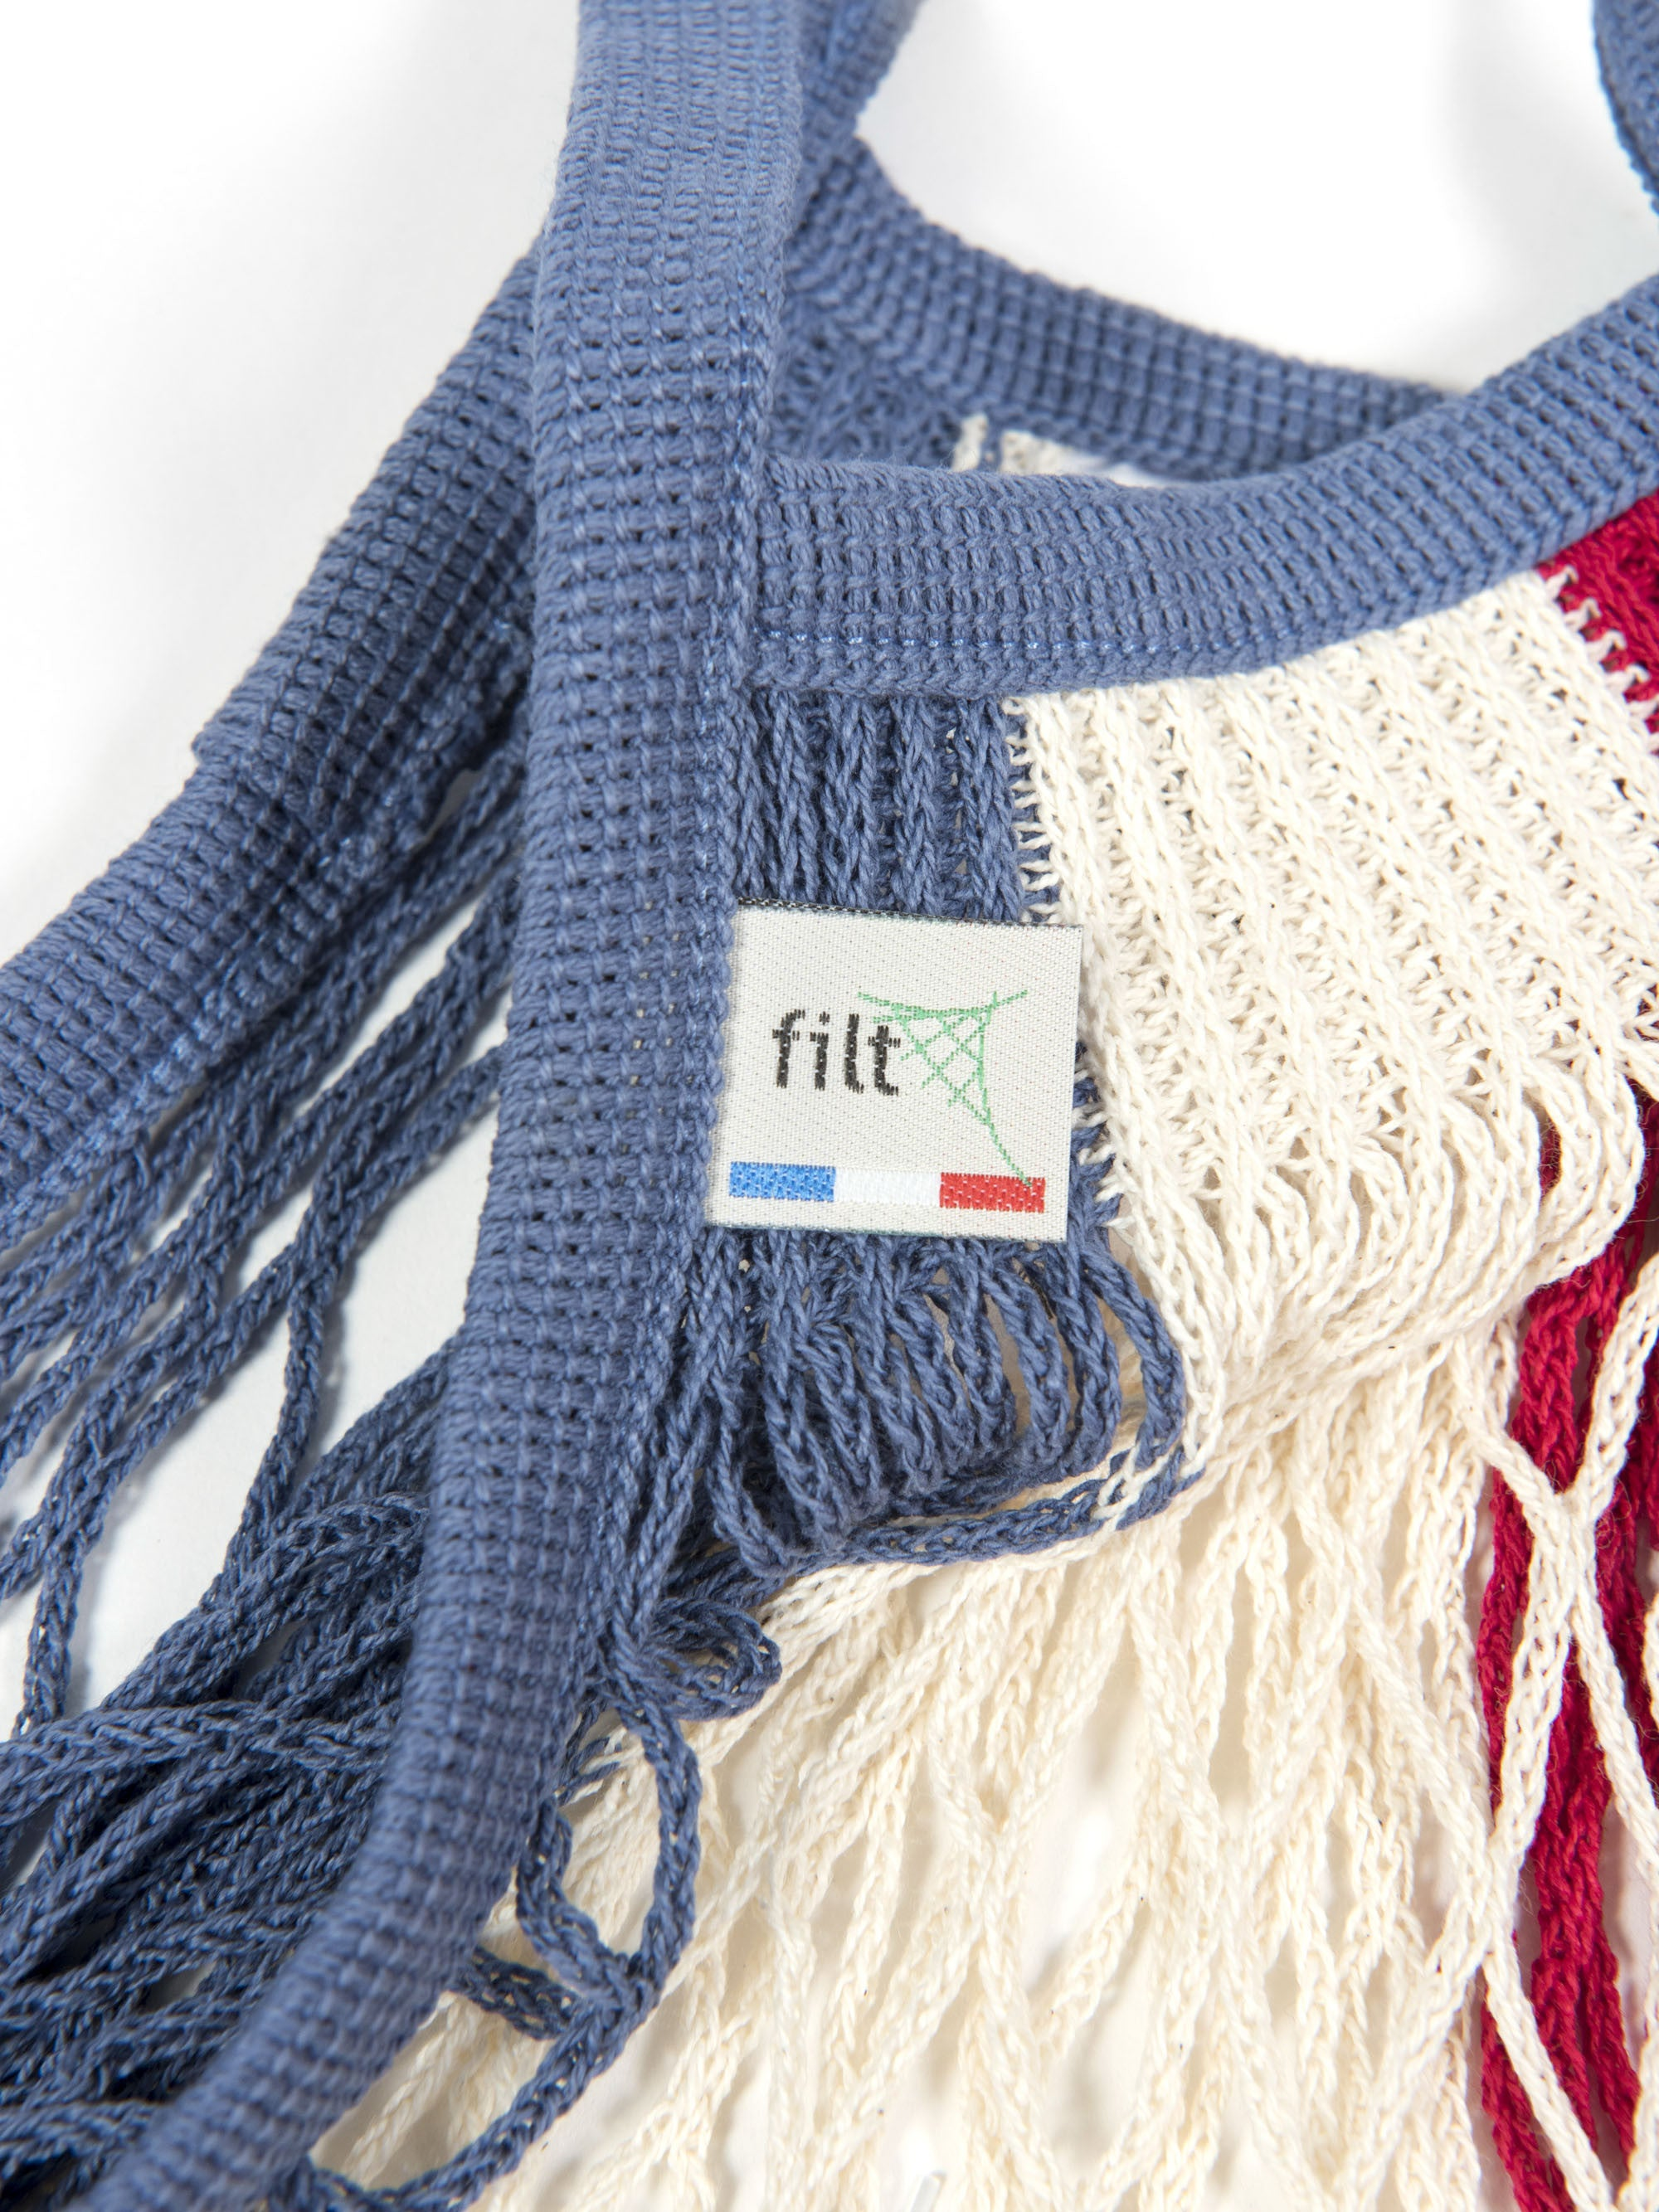 Filt Medium Bag in Red, White & Blue